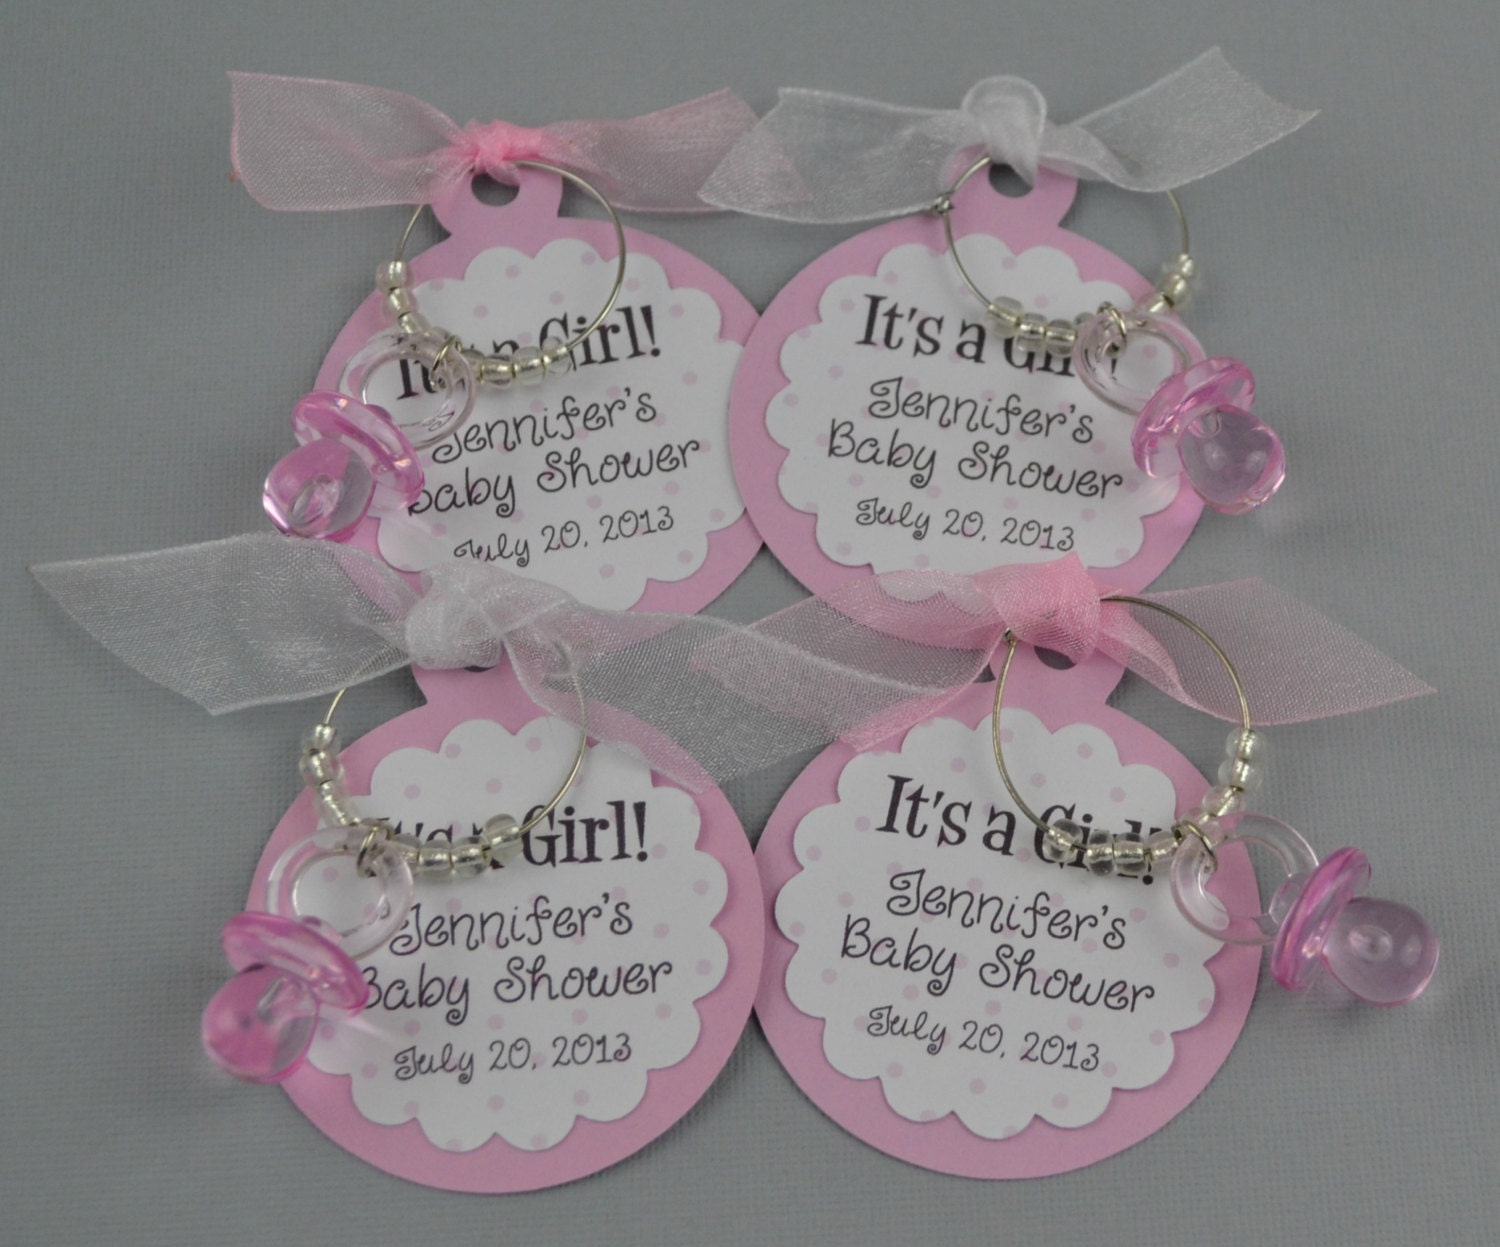 Popular items for girl baby shower favors on Etsy